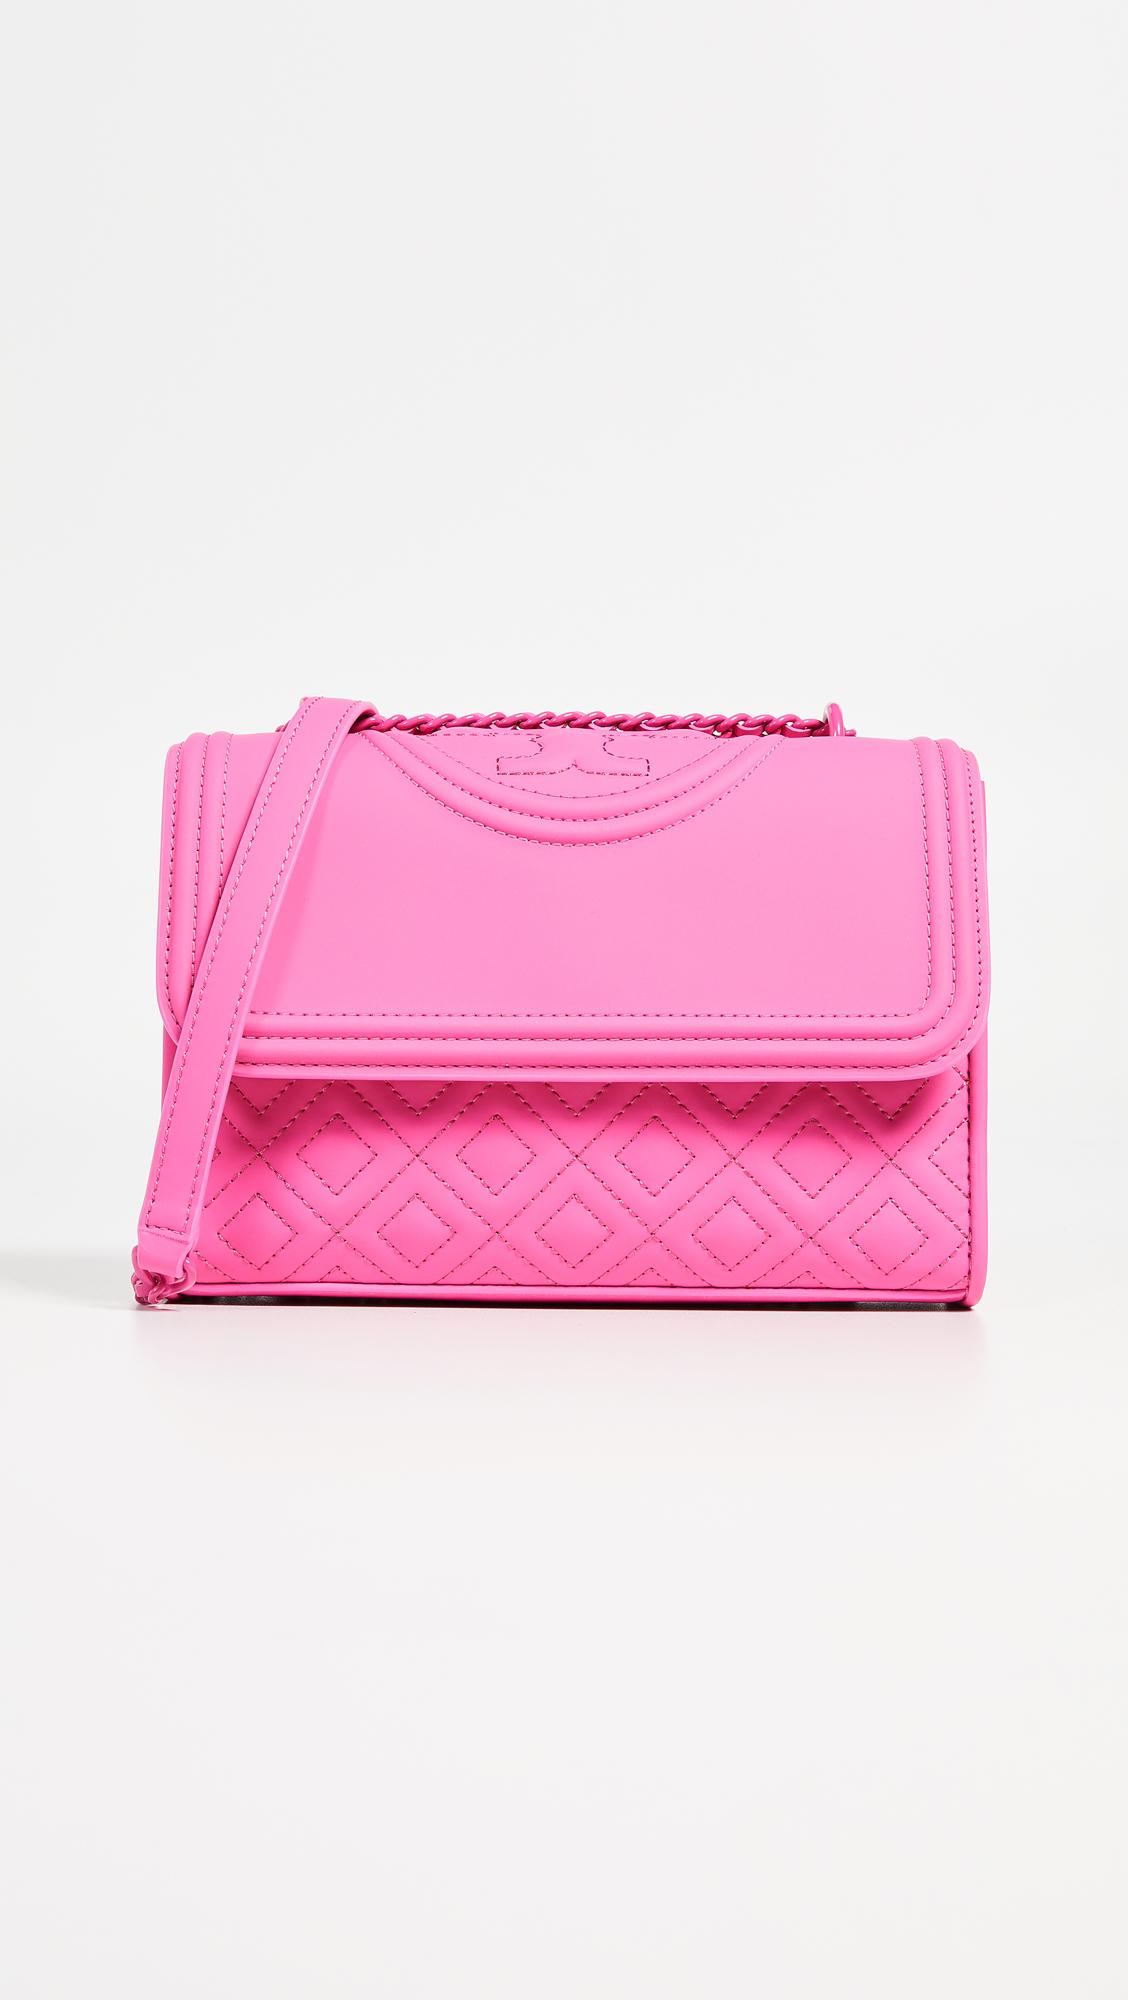 40e4f13a6bd1 Lyst - Tory Burch Fleming Matte Small Convertible Shoulder Bag in Pink